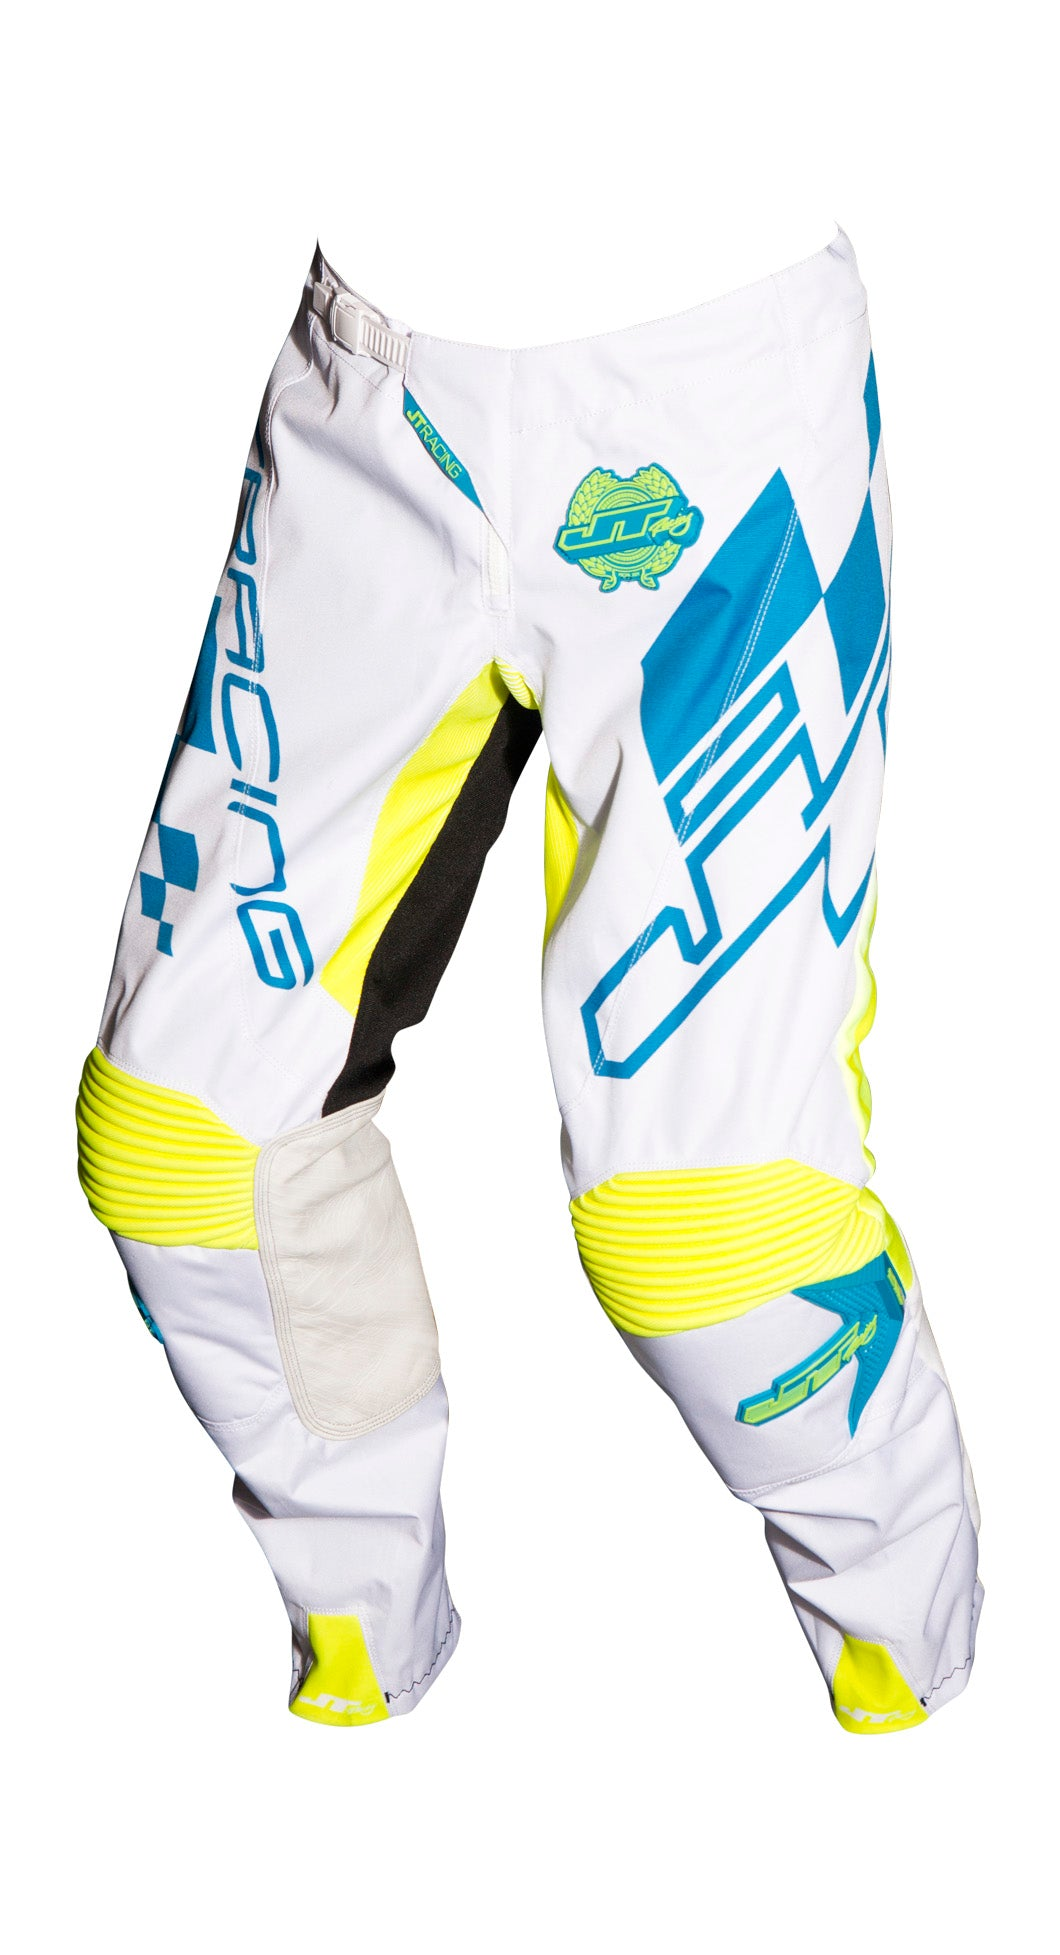 JT RACING USA-2018 Hyperlite Checker Pants, Cyan/White/Neon Yellow